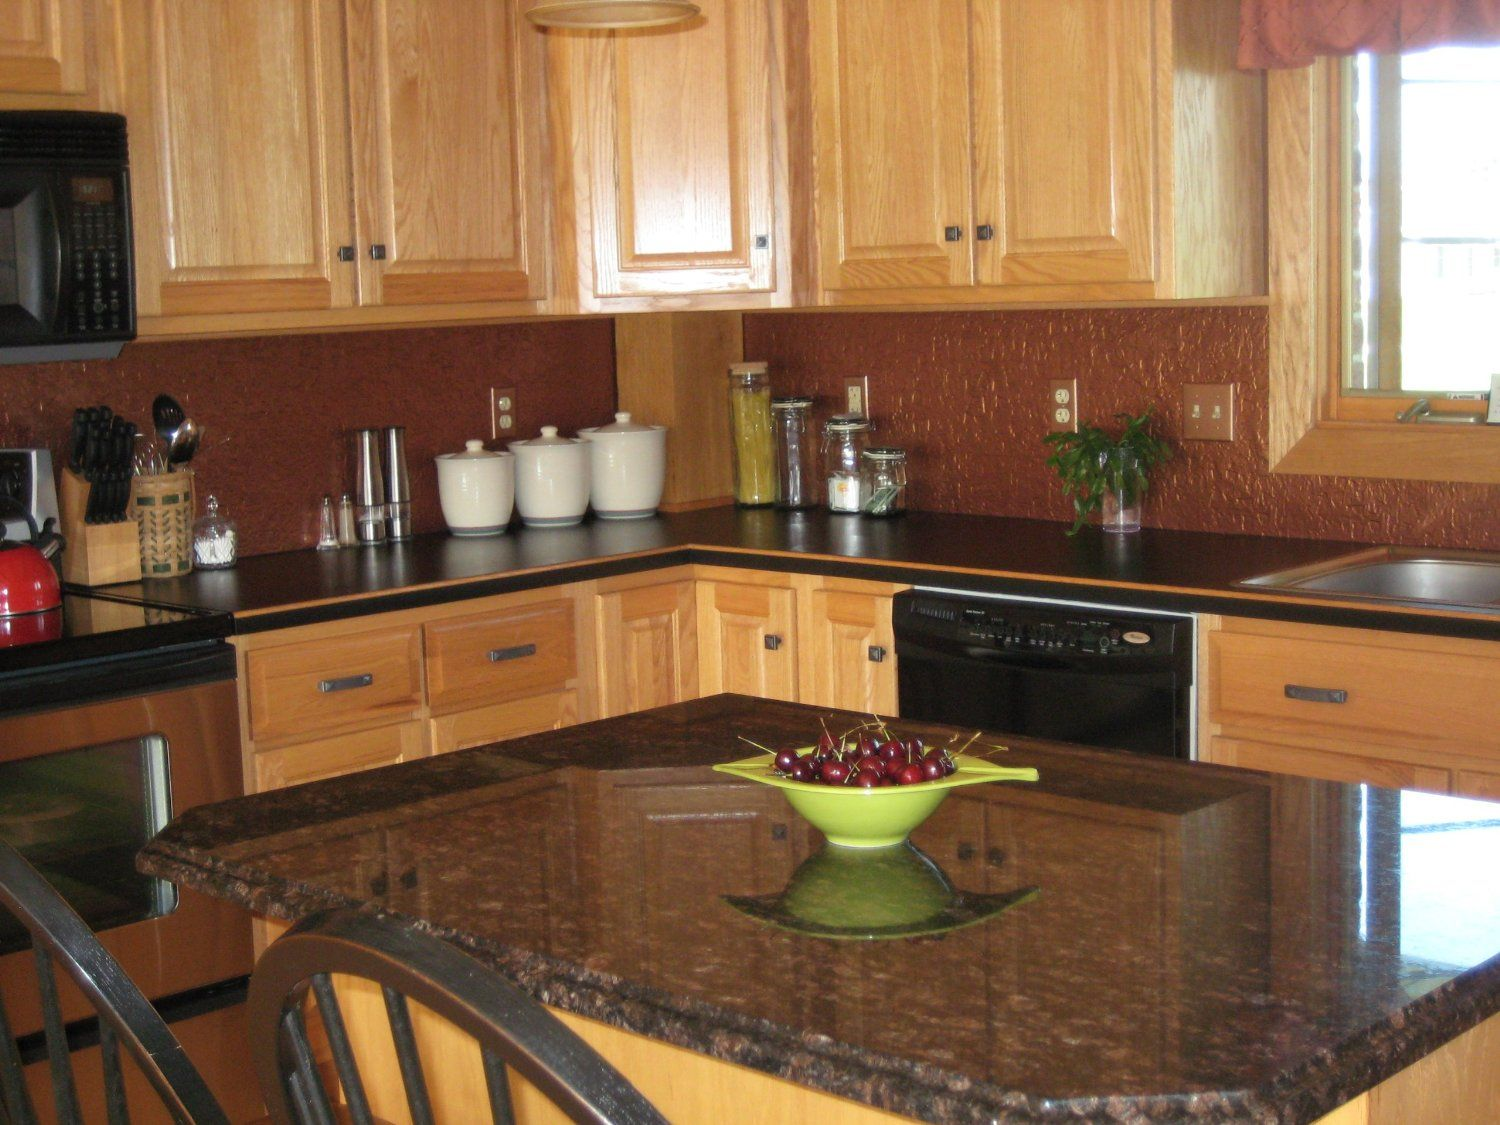 Kitchen Black Granite : Dark granite countertops with light cabinets